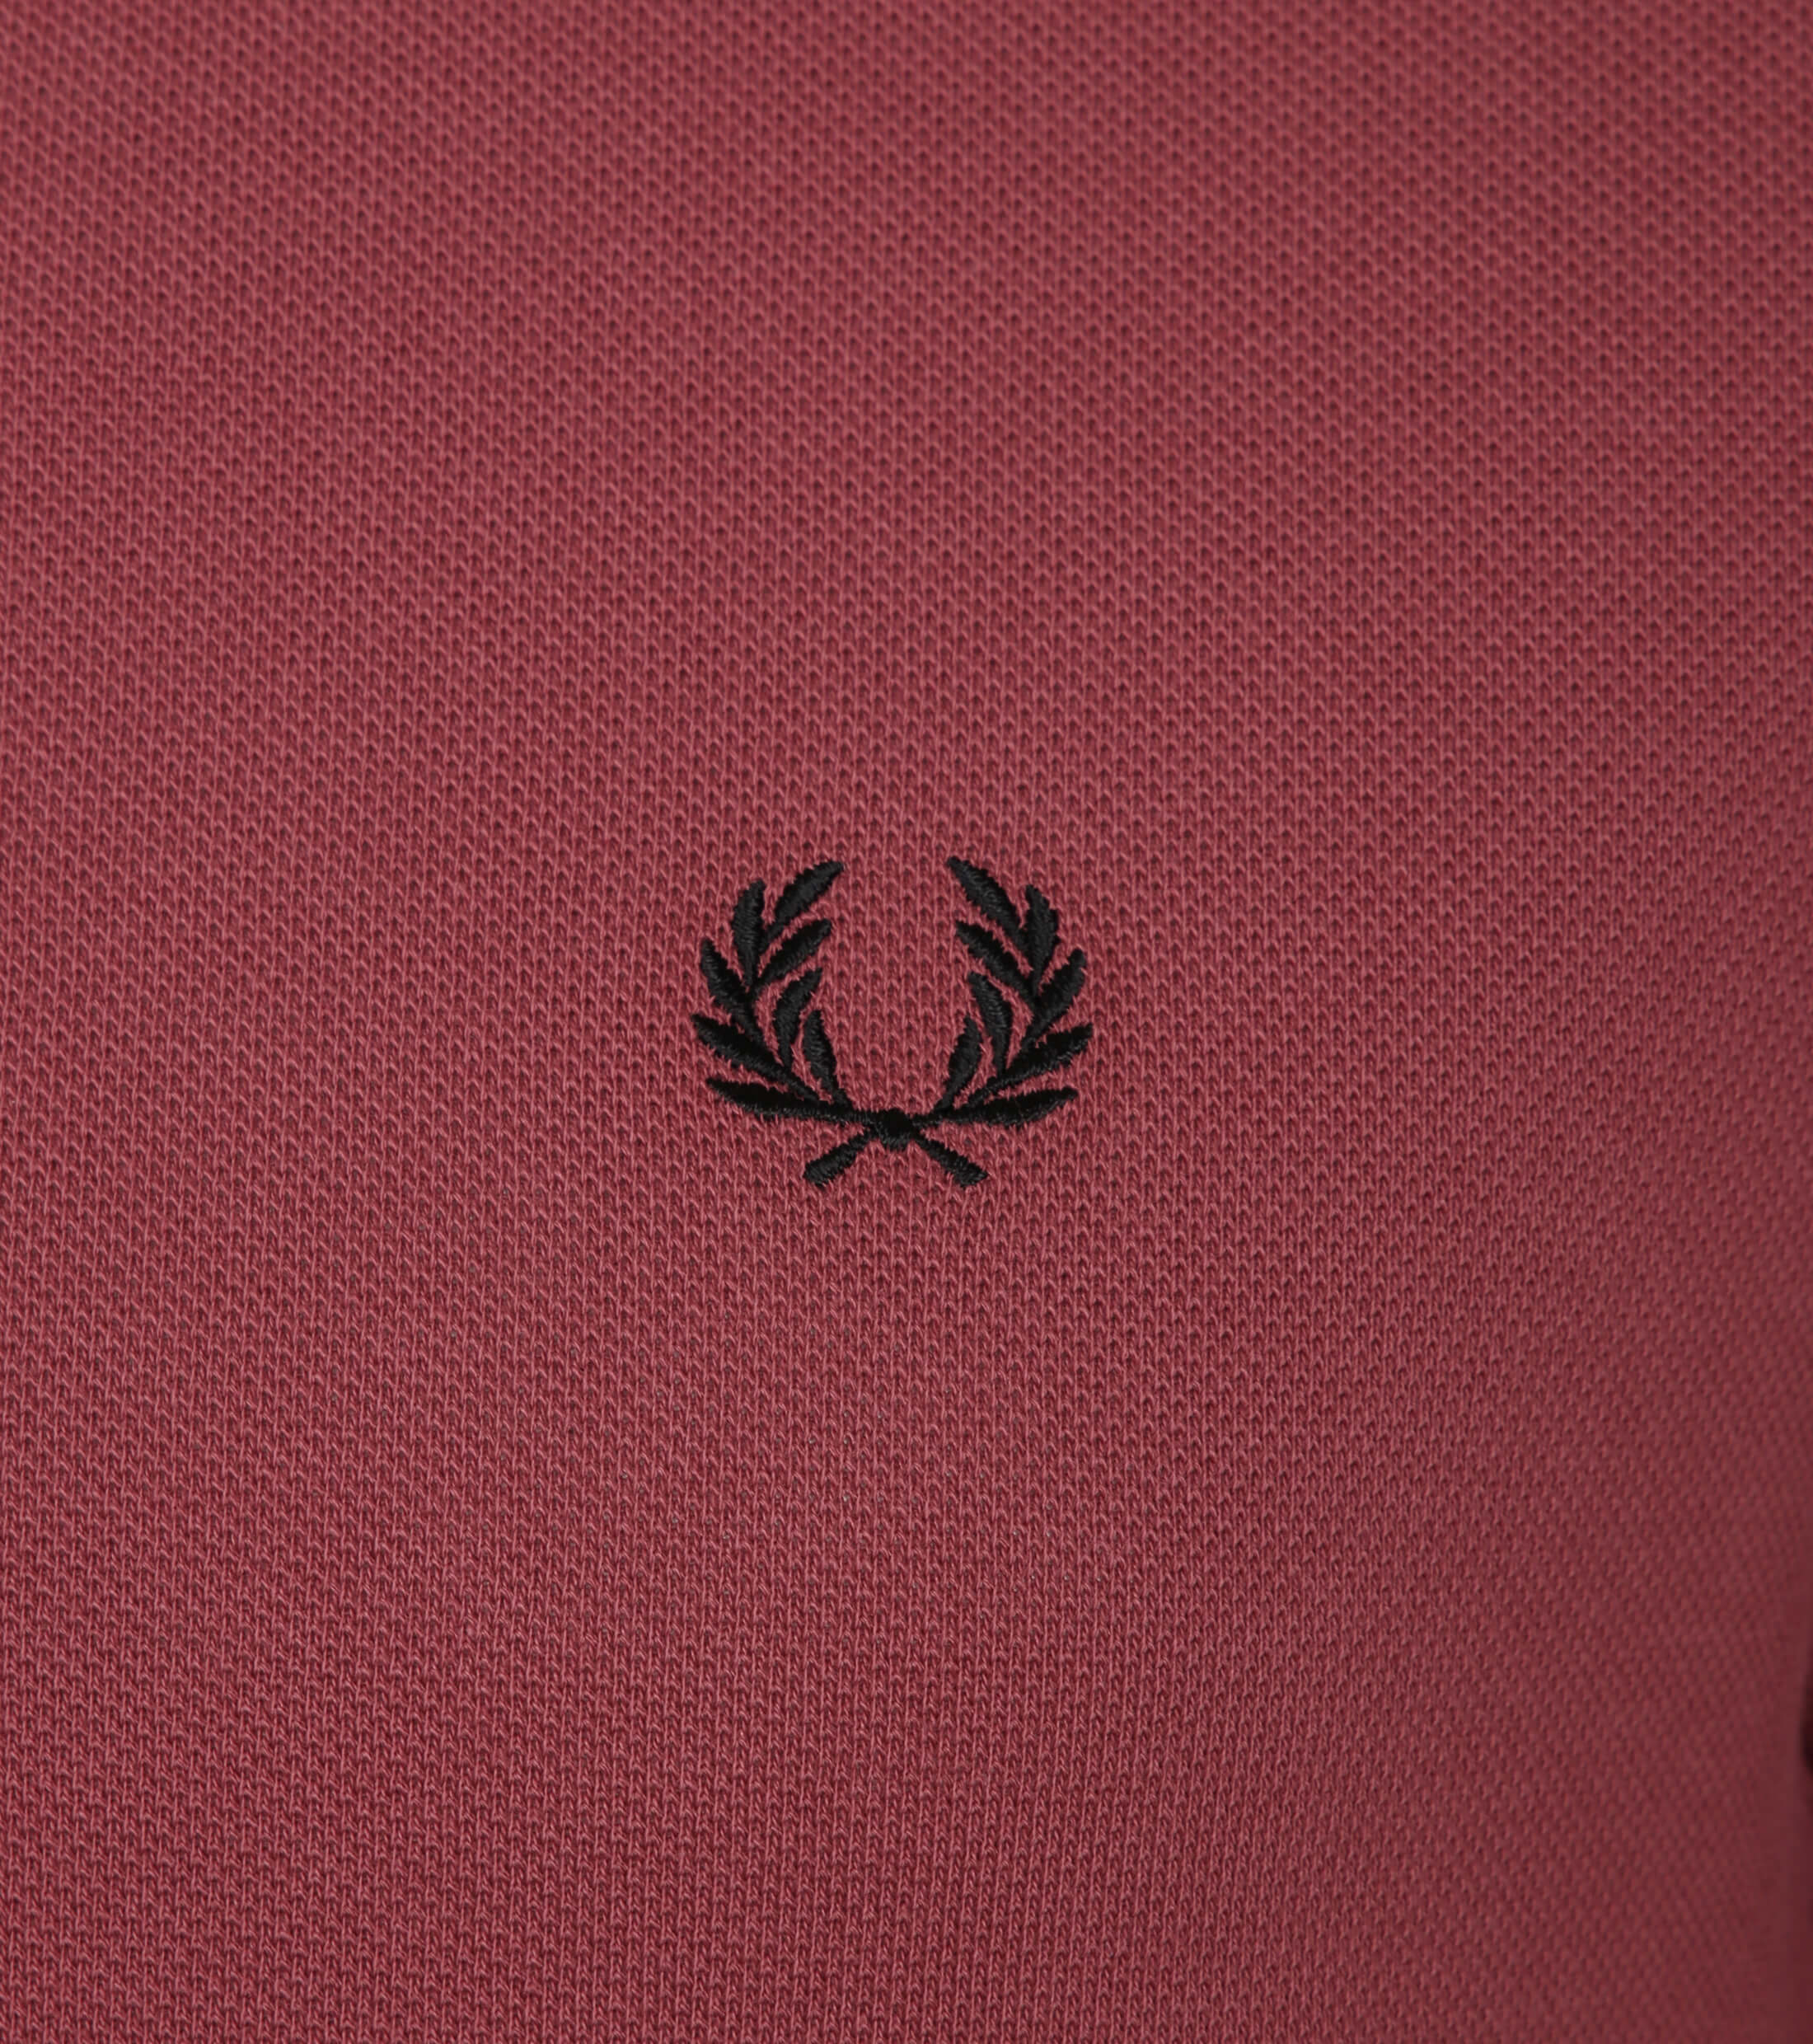 Fred Perry Poloshirt G36 Rot foto 1